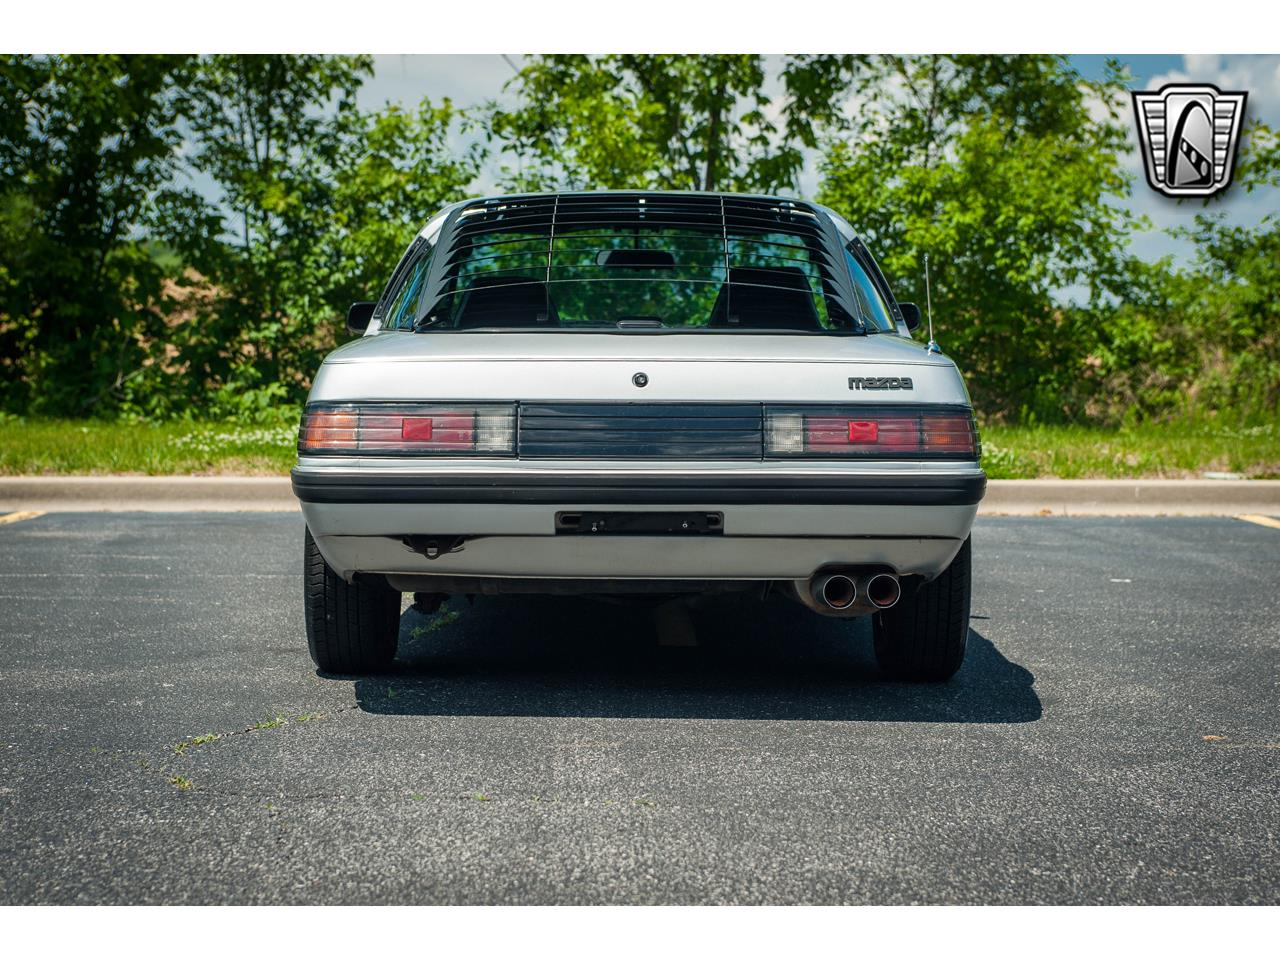 Large Picture of '82 RX-7 located in O'Fallon Illinois Offered by Gateway Classic Cars - St. Louis - QB9V